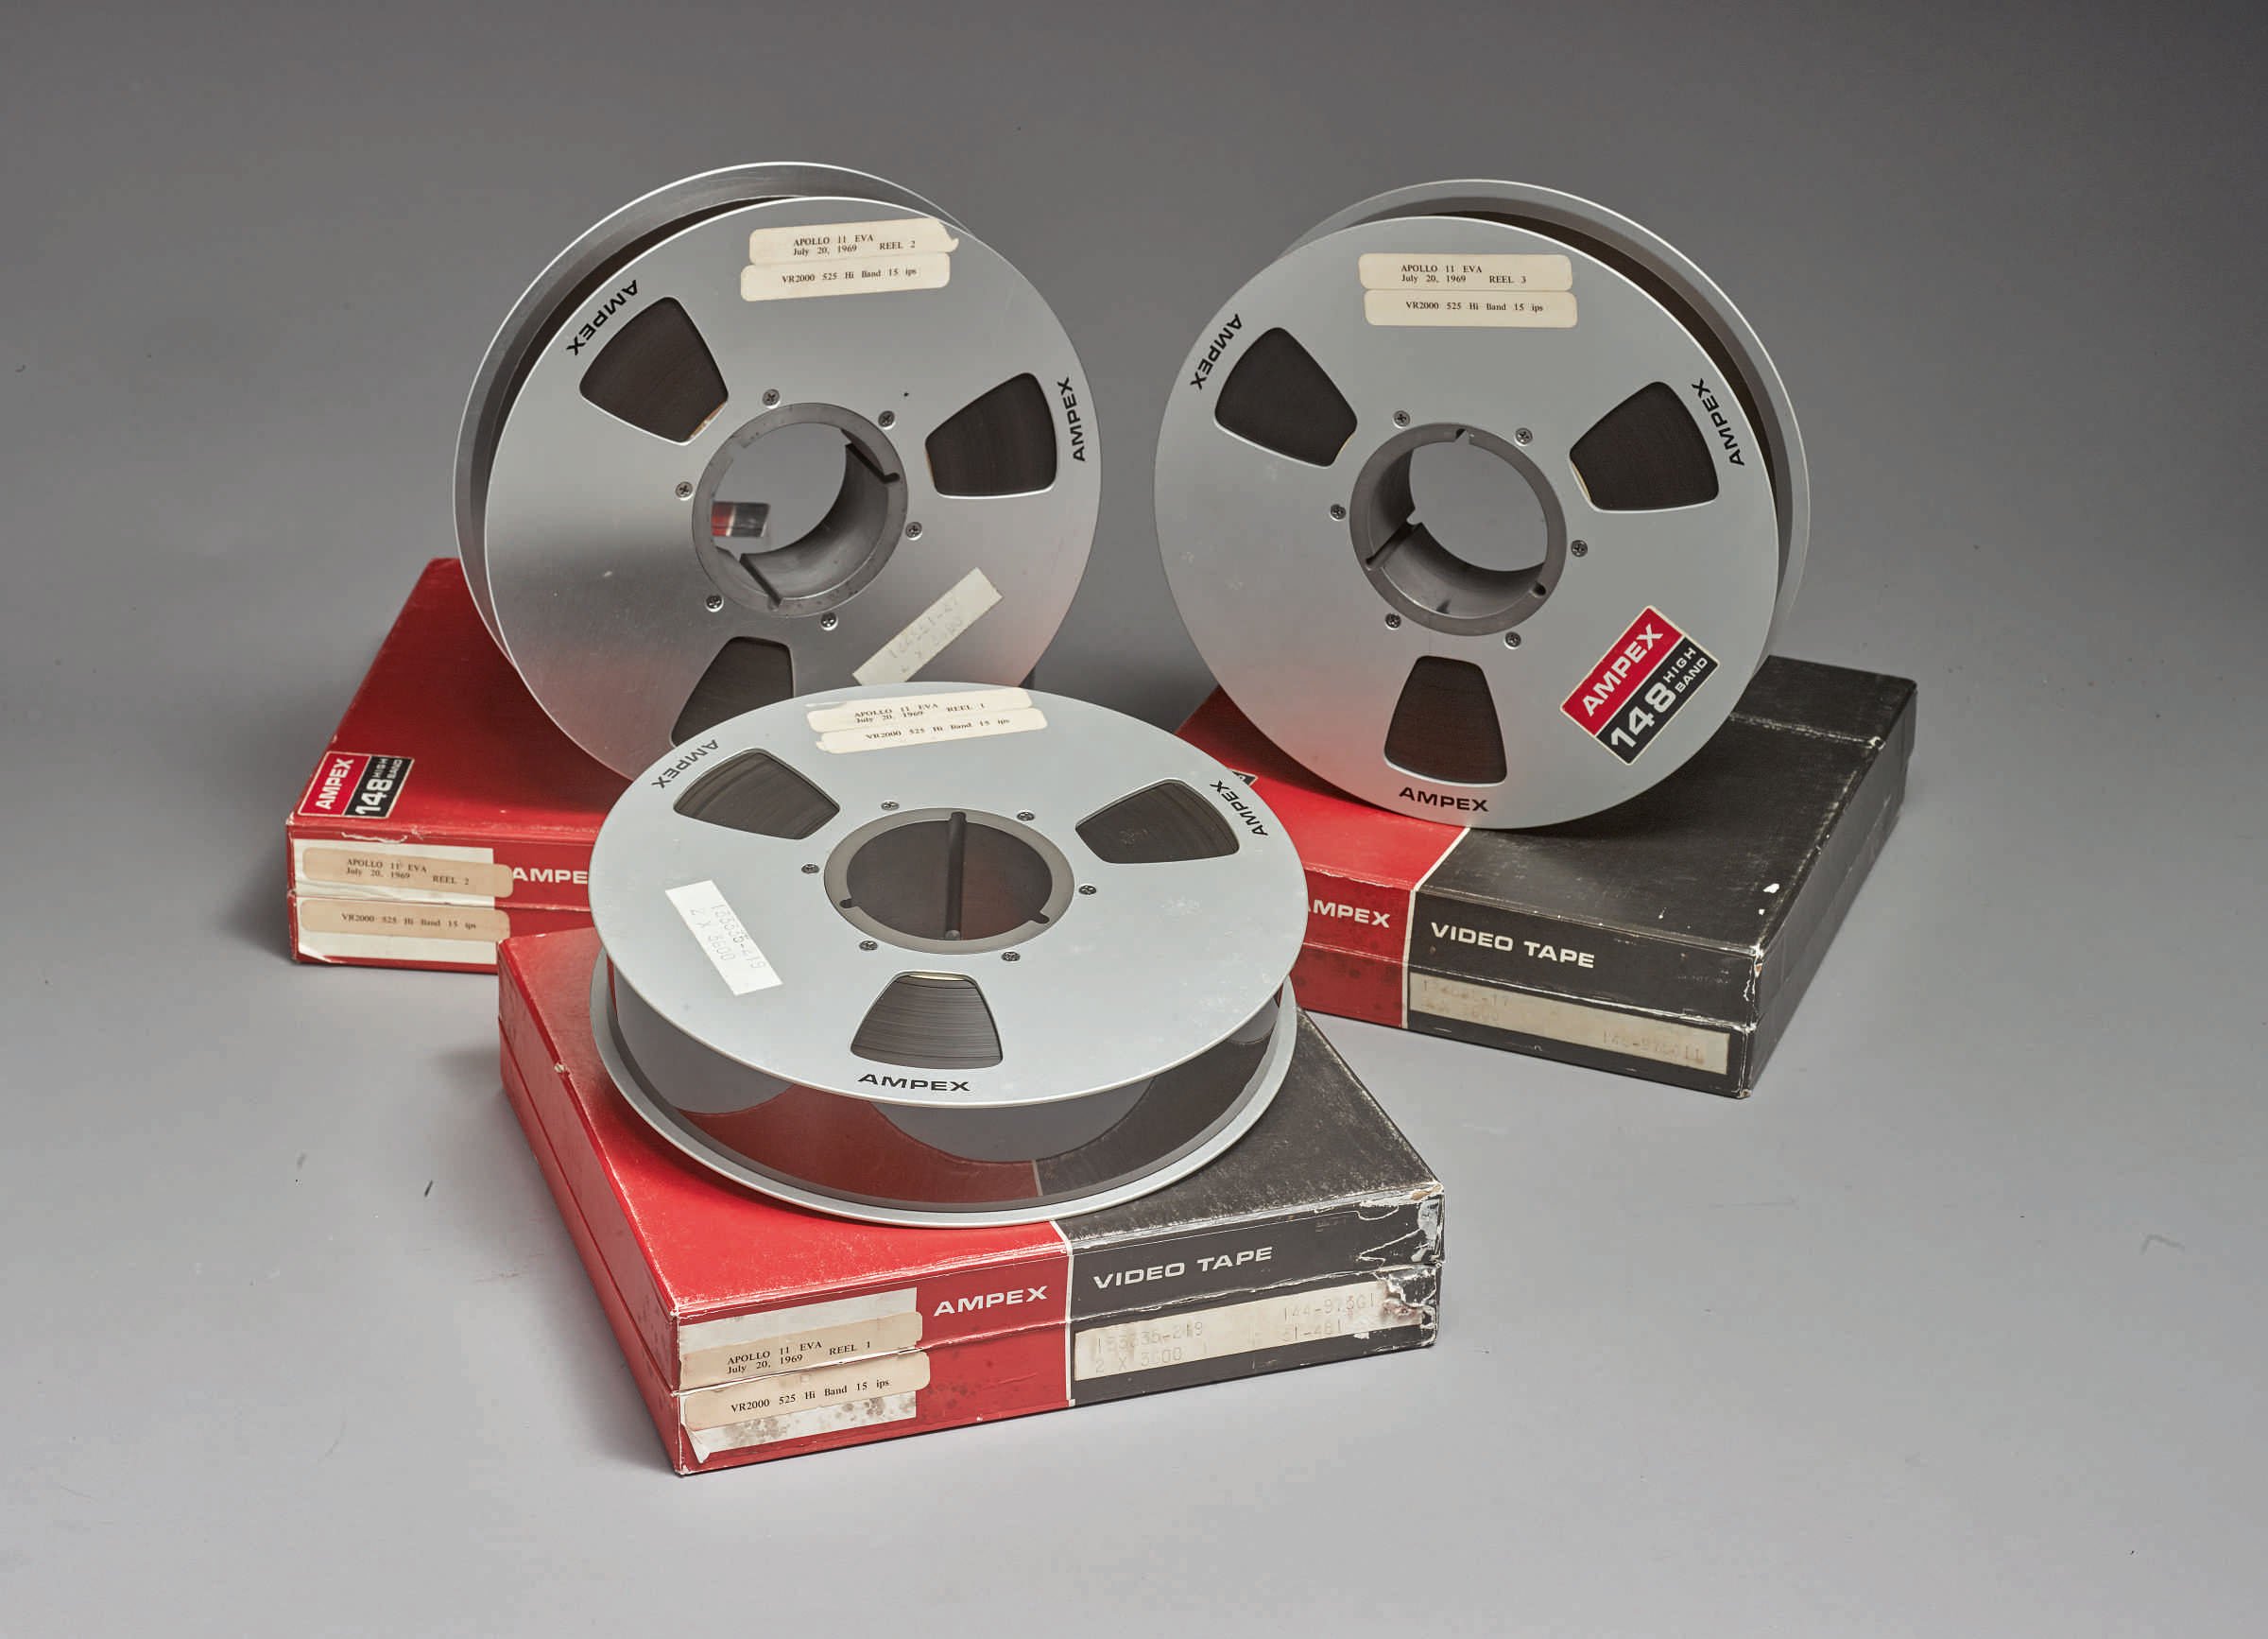 First-generation NASA videotapes of the Apollo 11 moonwalk sold for $1.8 million in 2019--enough to earn third place on the list of the most expensive lots showcased on The Hot Bid this year.